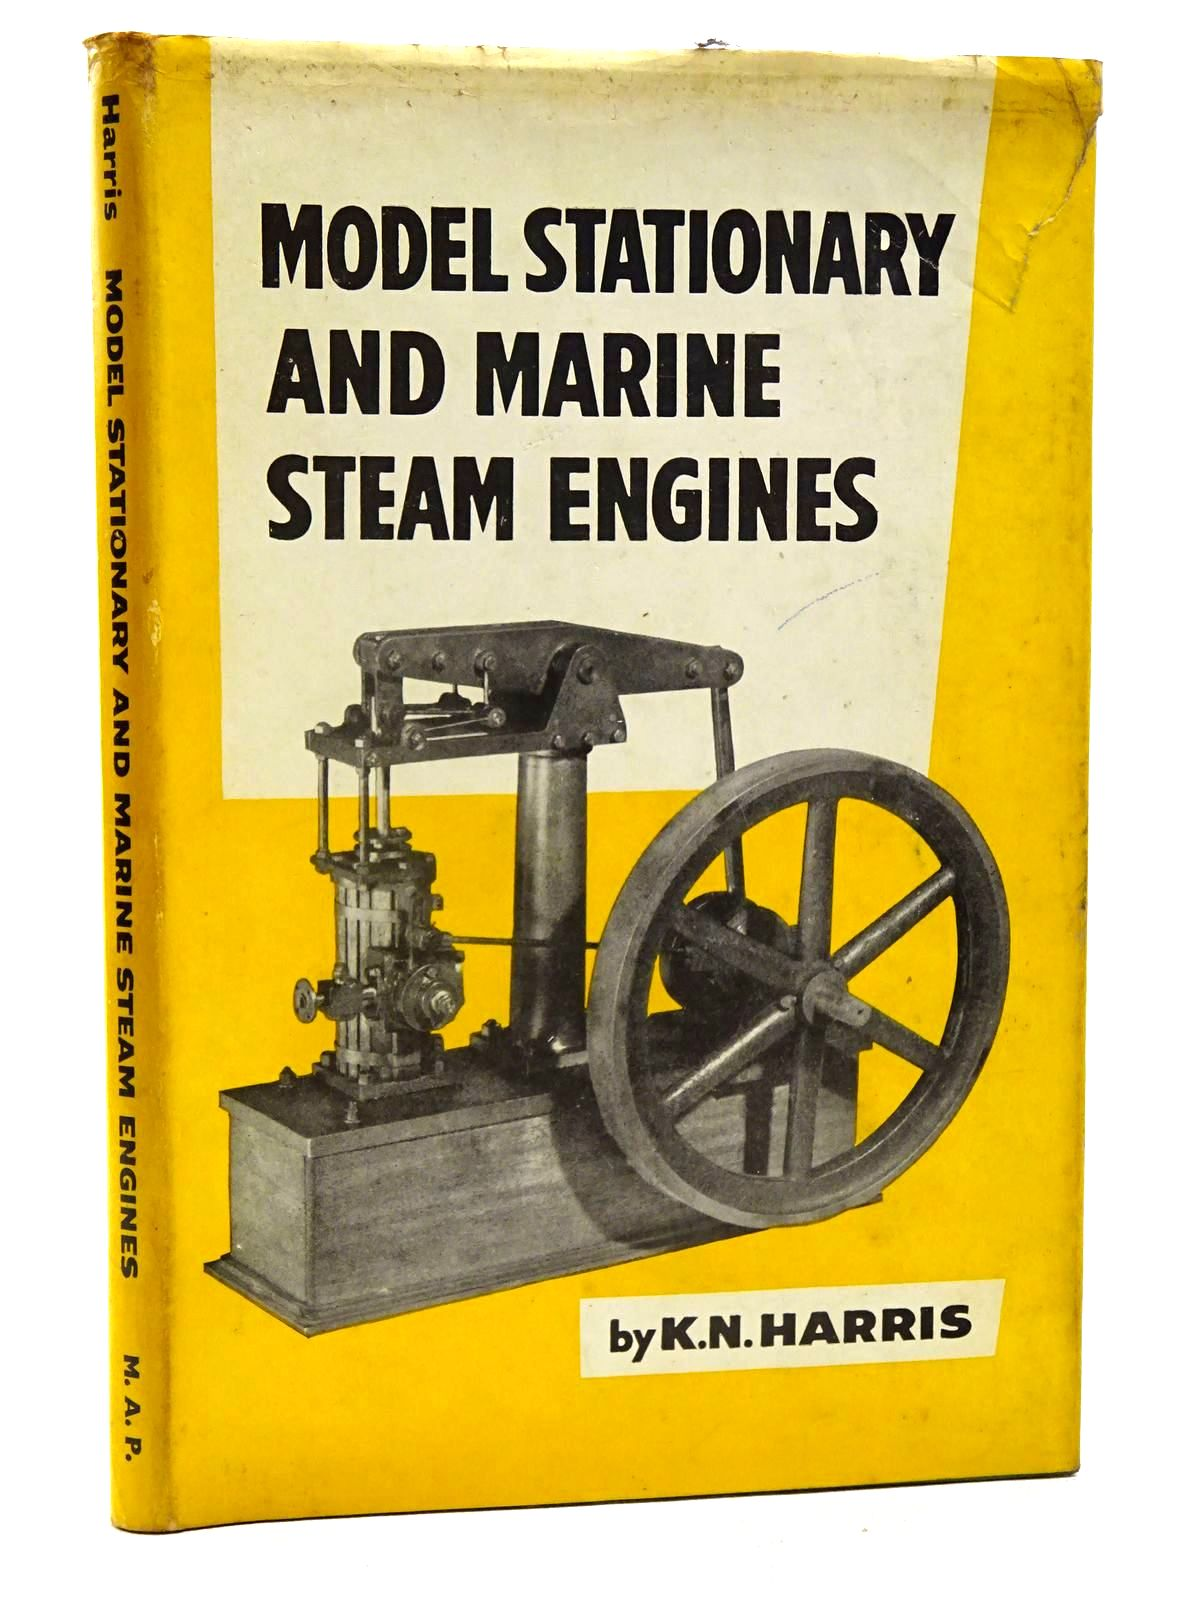 Photo of MODEL STATIONARY AND MARINE STEAM ENGINES written by Harris, K.N. published by Model & Allied Publications Ltd. (STOCK CODE: 1816236)  for sale by Stella & Rose's Books